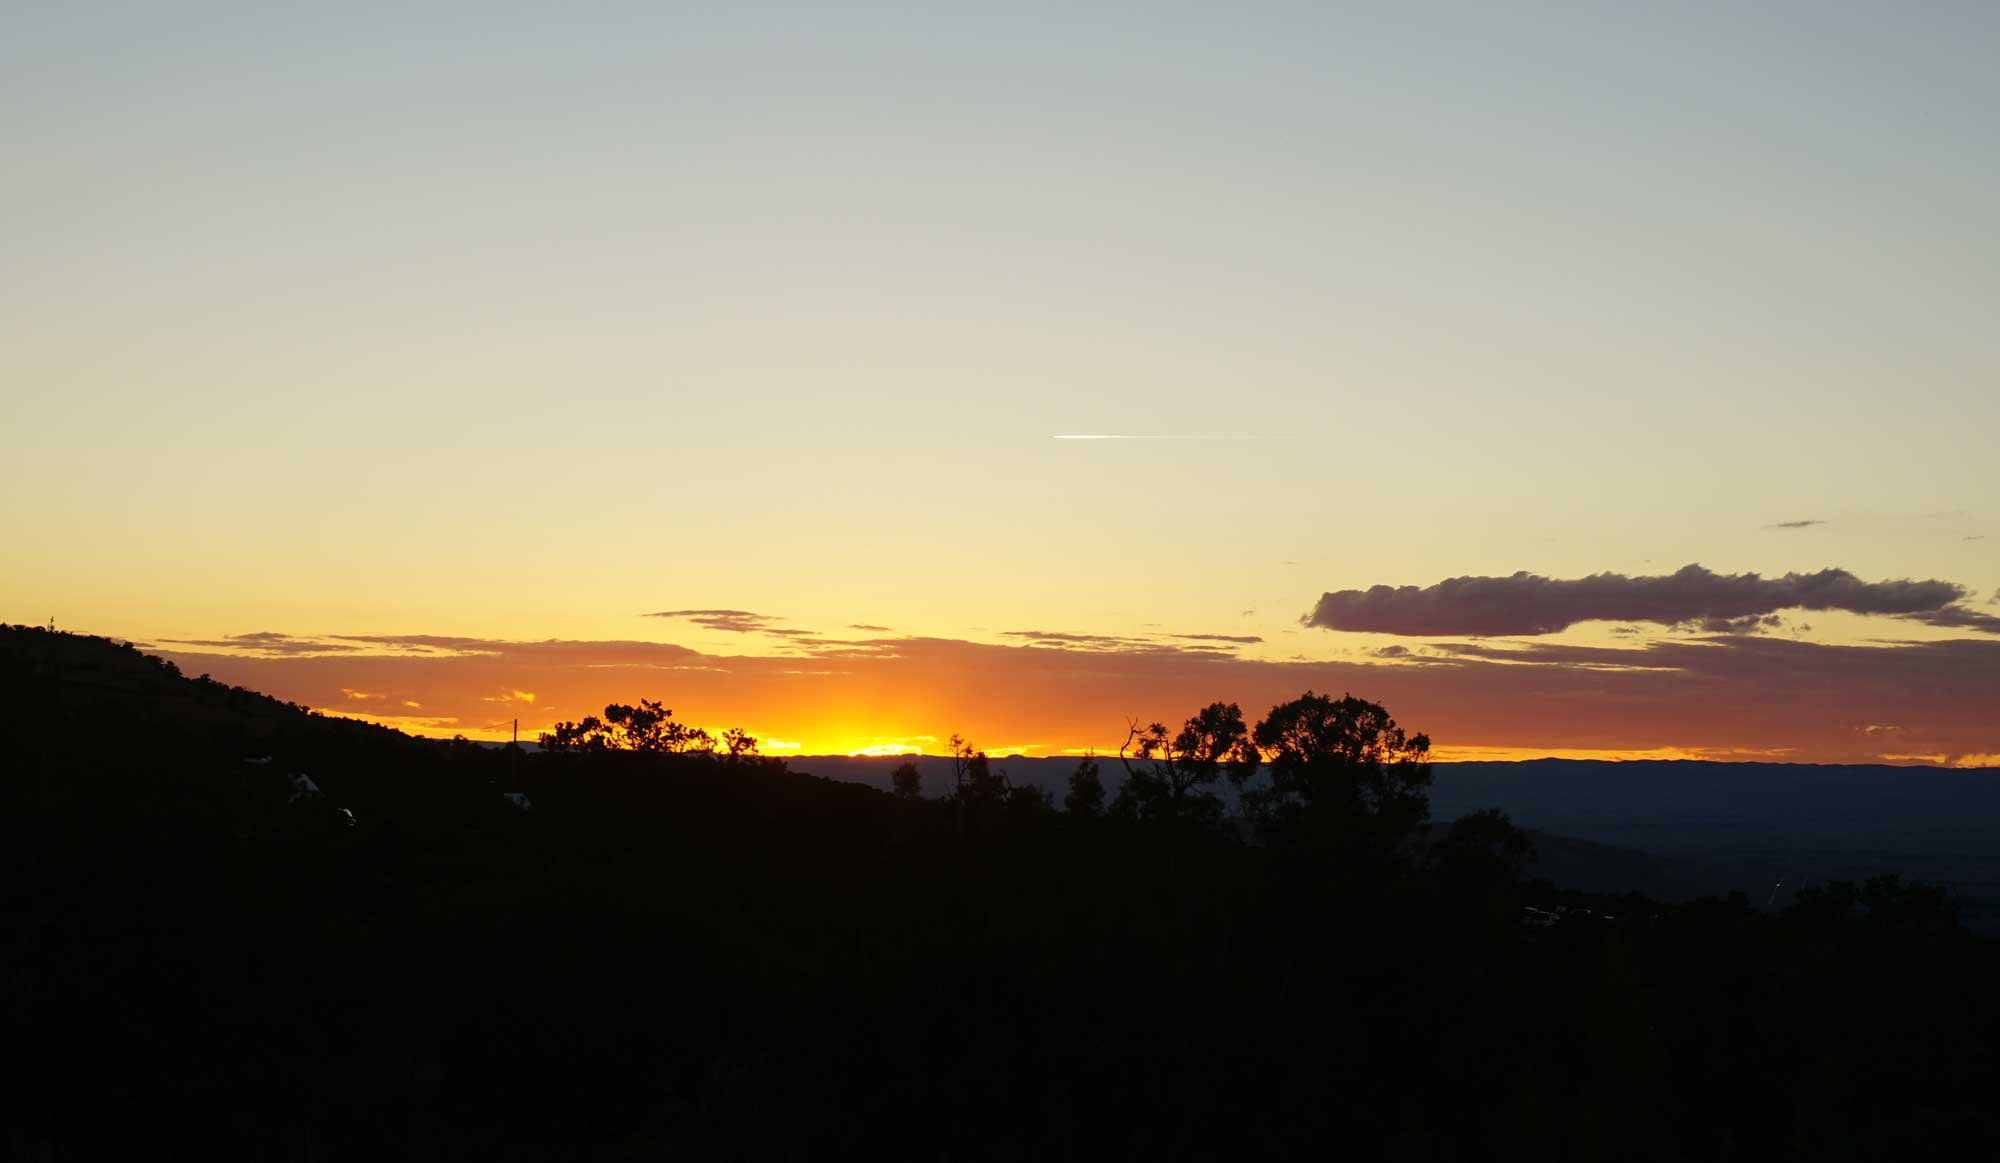 Sunset views are always free, and can be spectacular in Grand Junction, Colorado.